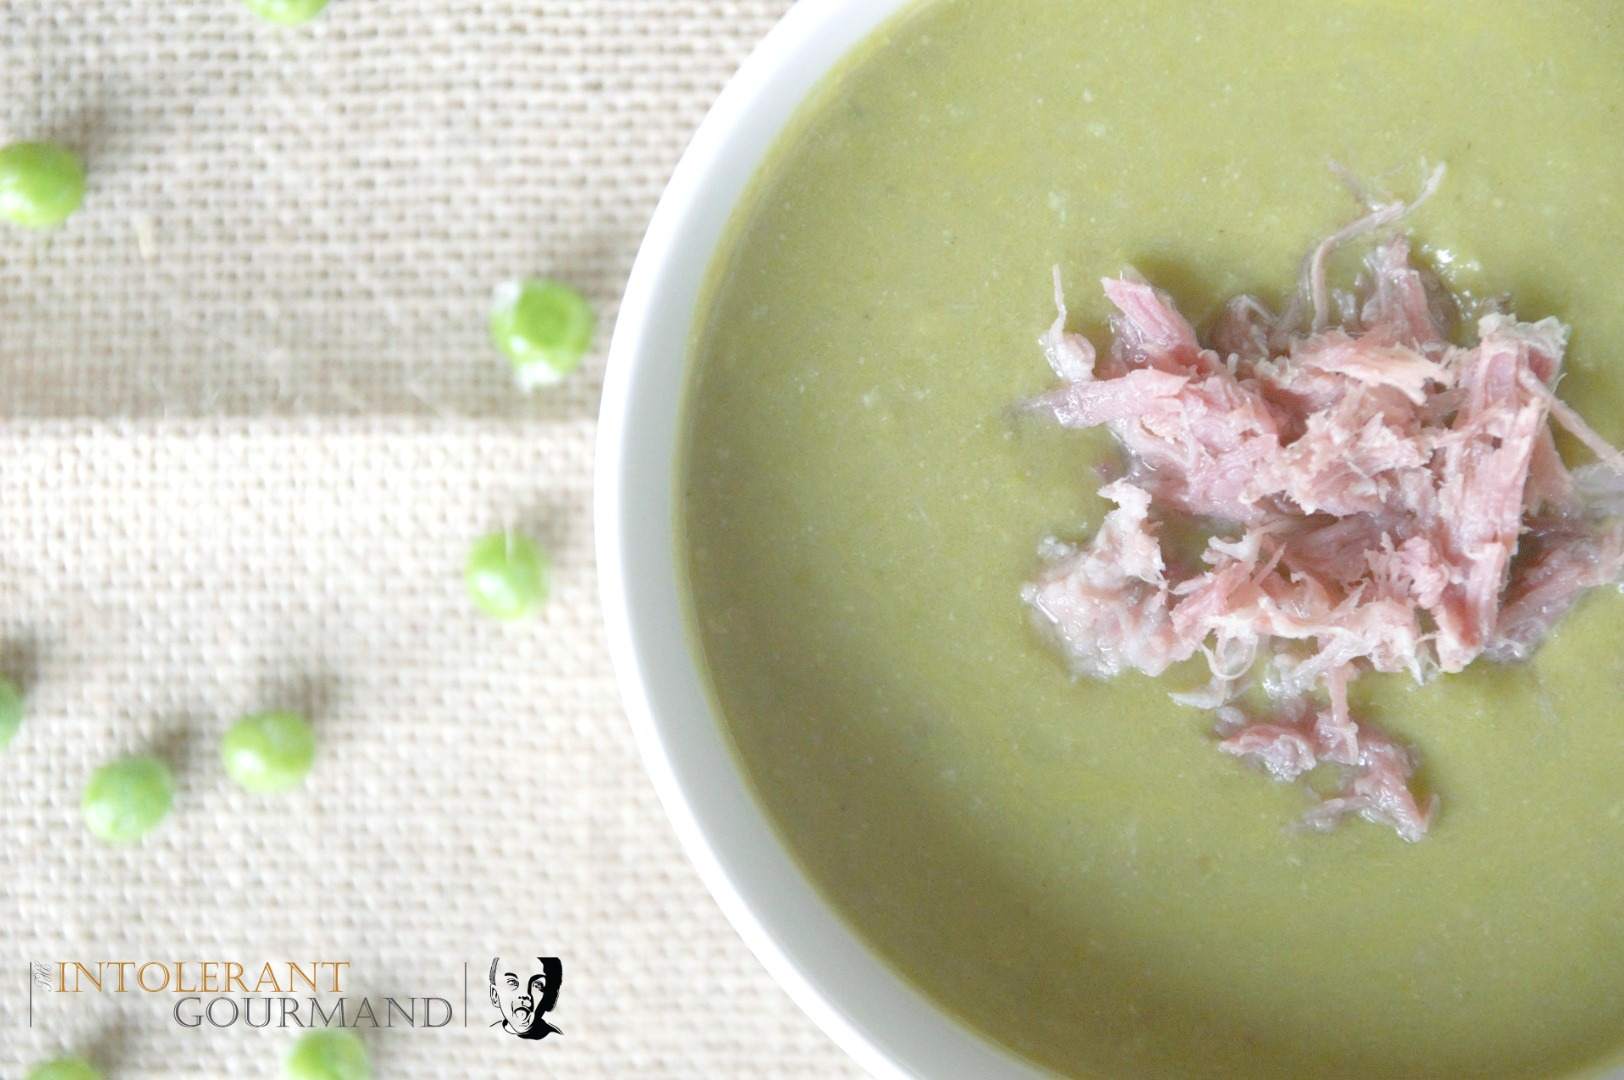 Green veg soup - naturally gluten-free, packed full of vitamins and nutrients, delicious and simple to make! Perfect for lunch or light dinner! www.intolerantgourmand.com